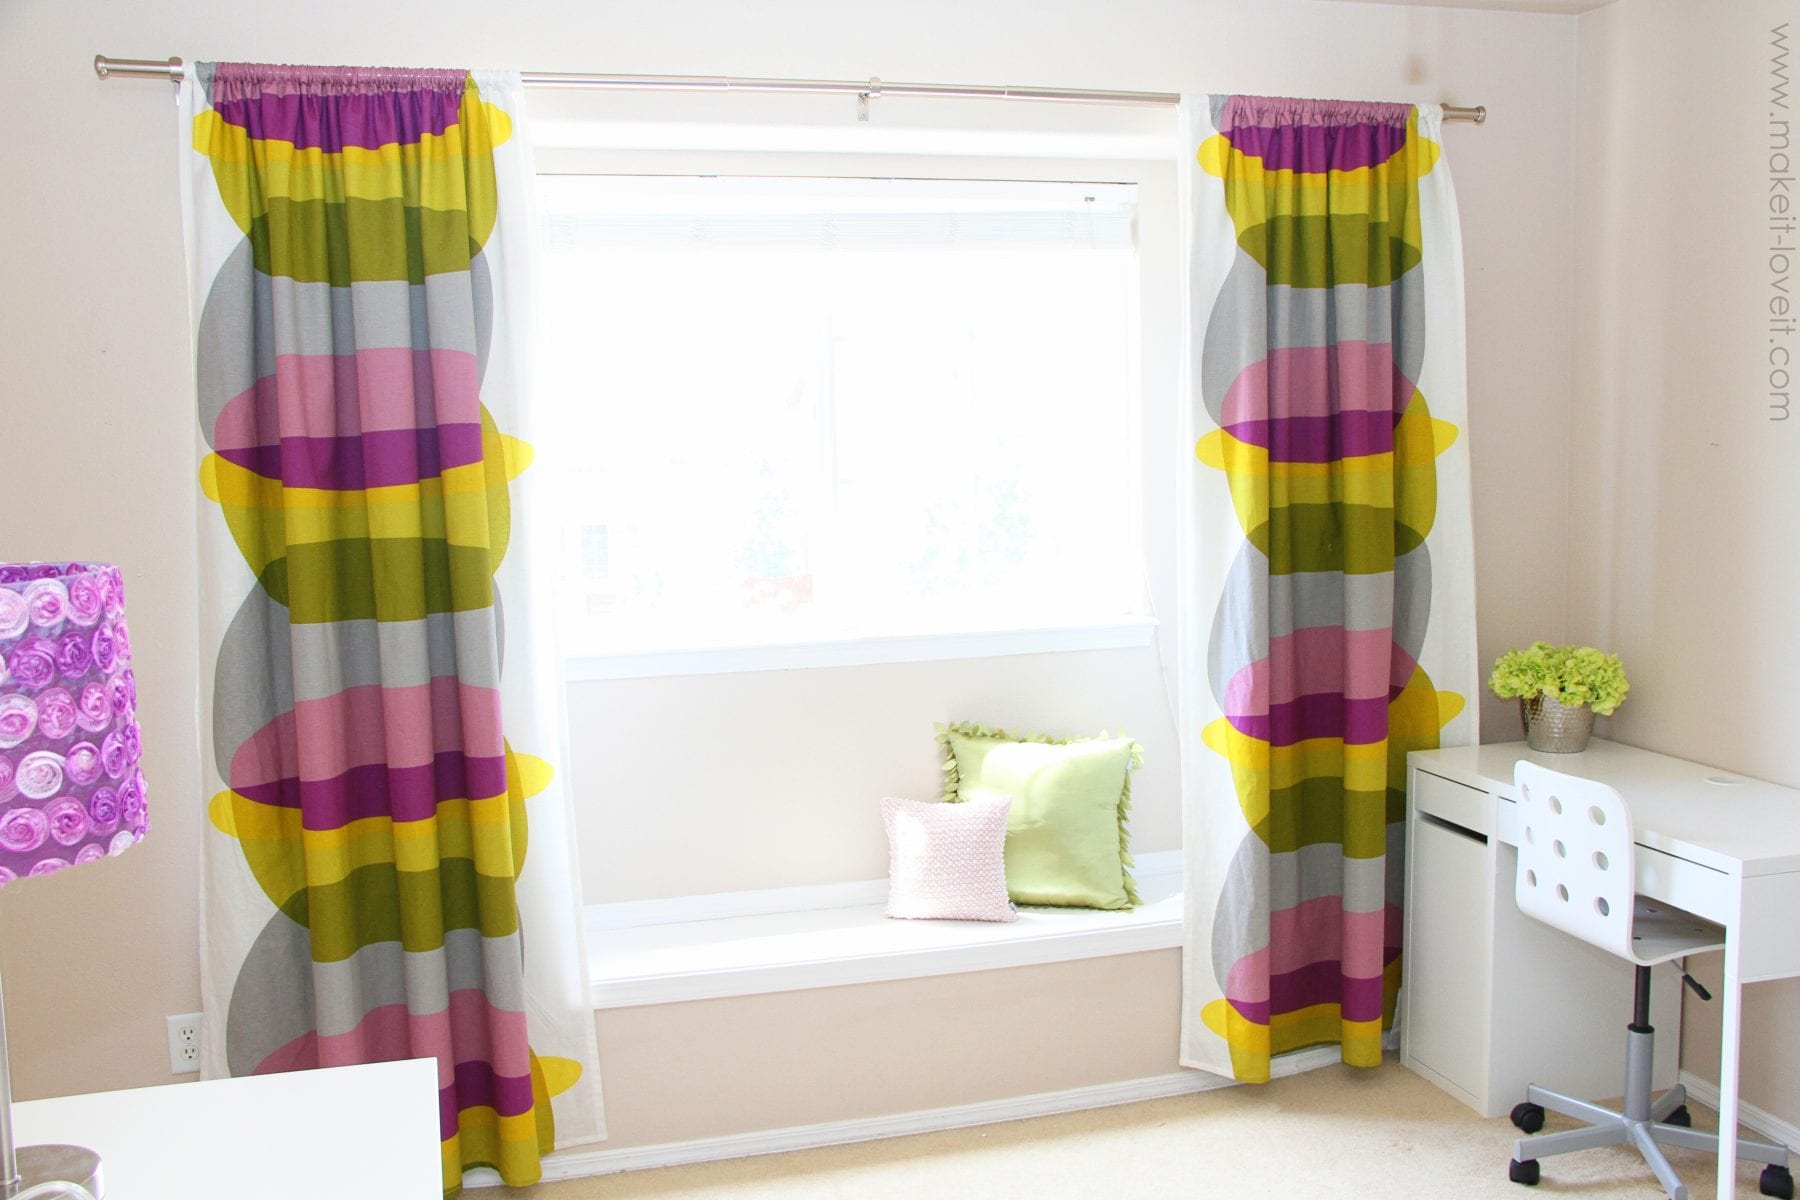 How Many Yards Of Fabric For Curtains Make Your Curtains Blackout Curtains Simplified Version Make